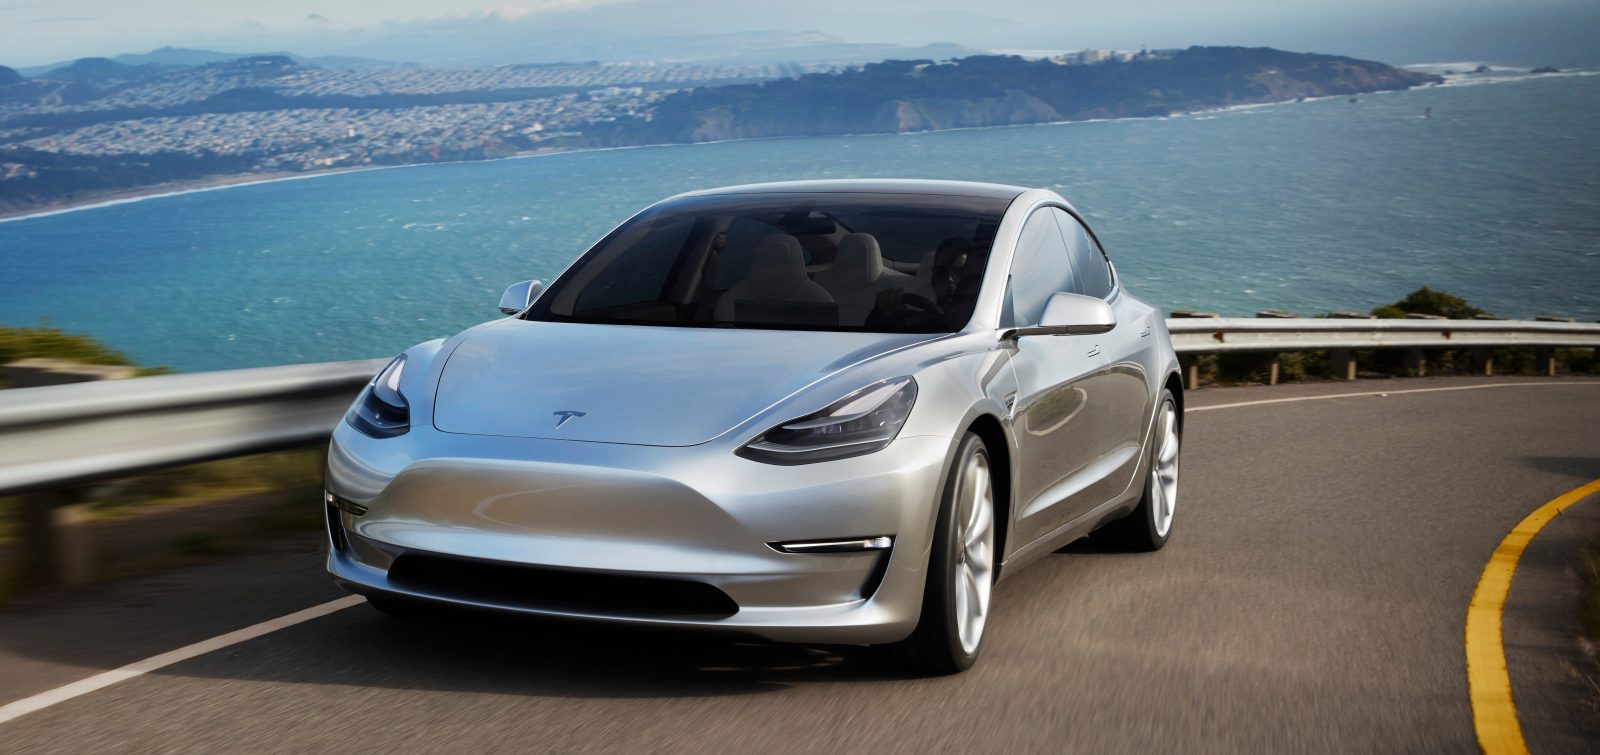 Tesla Cars Are Suddenly Accelerating For No Reason, Investigation Underway - Ubergizmo